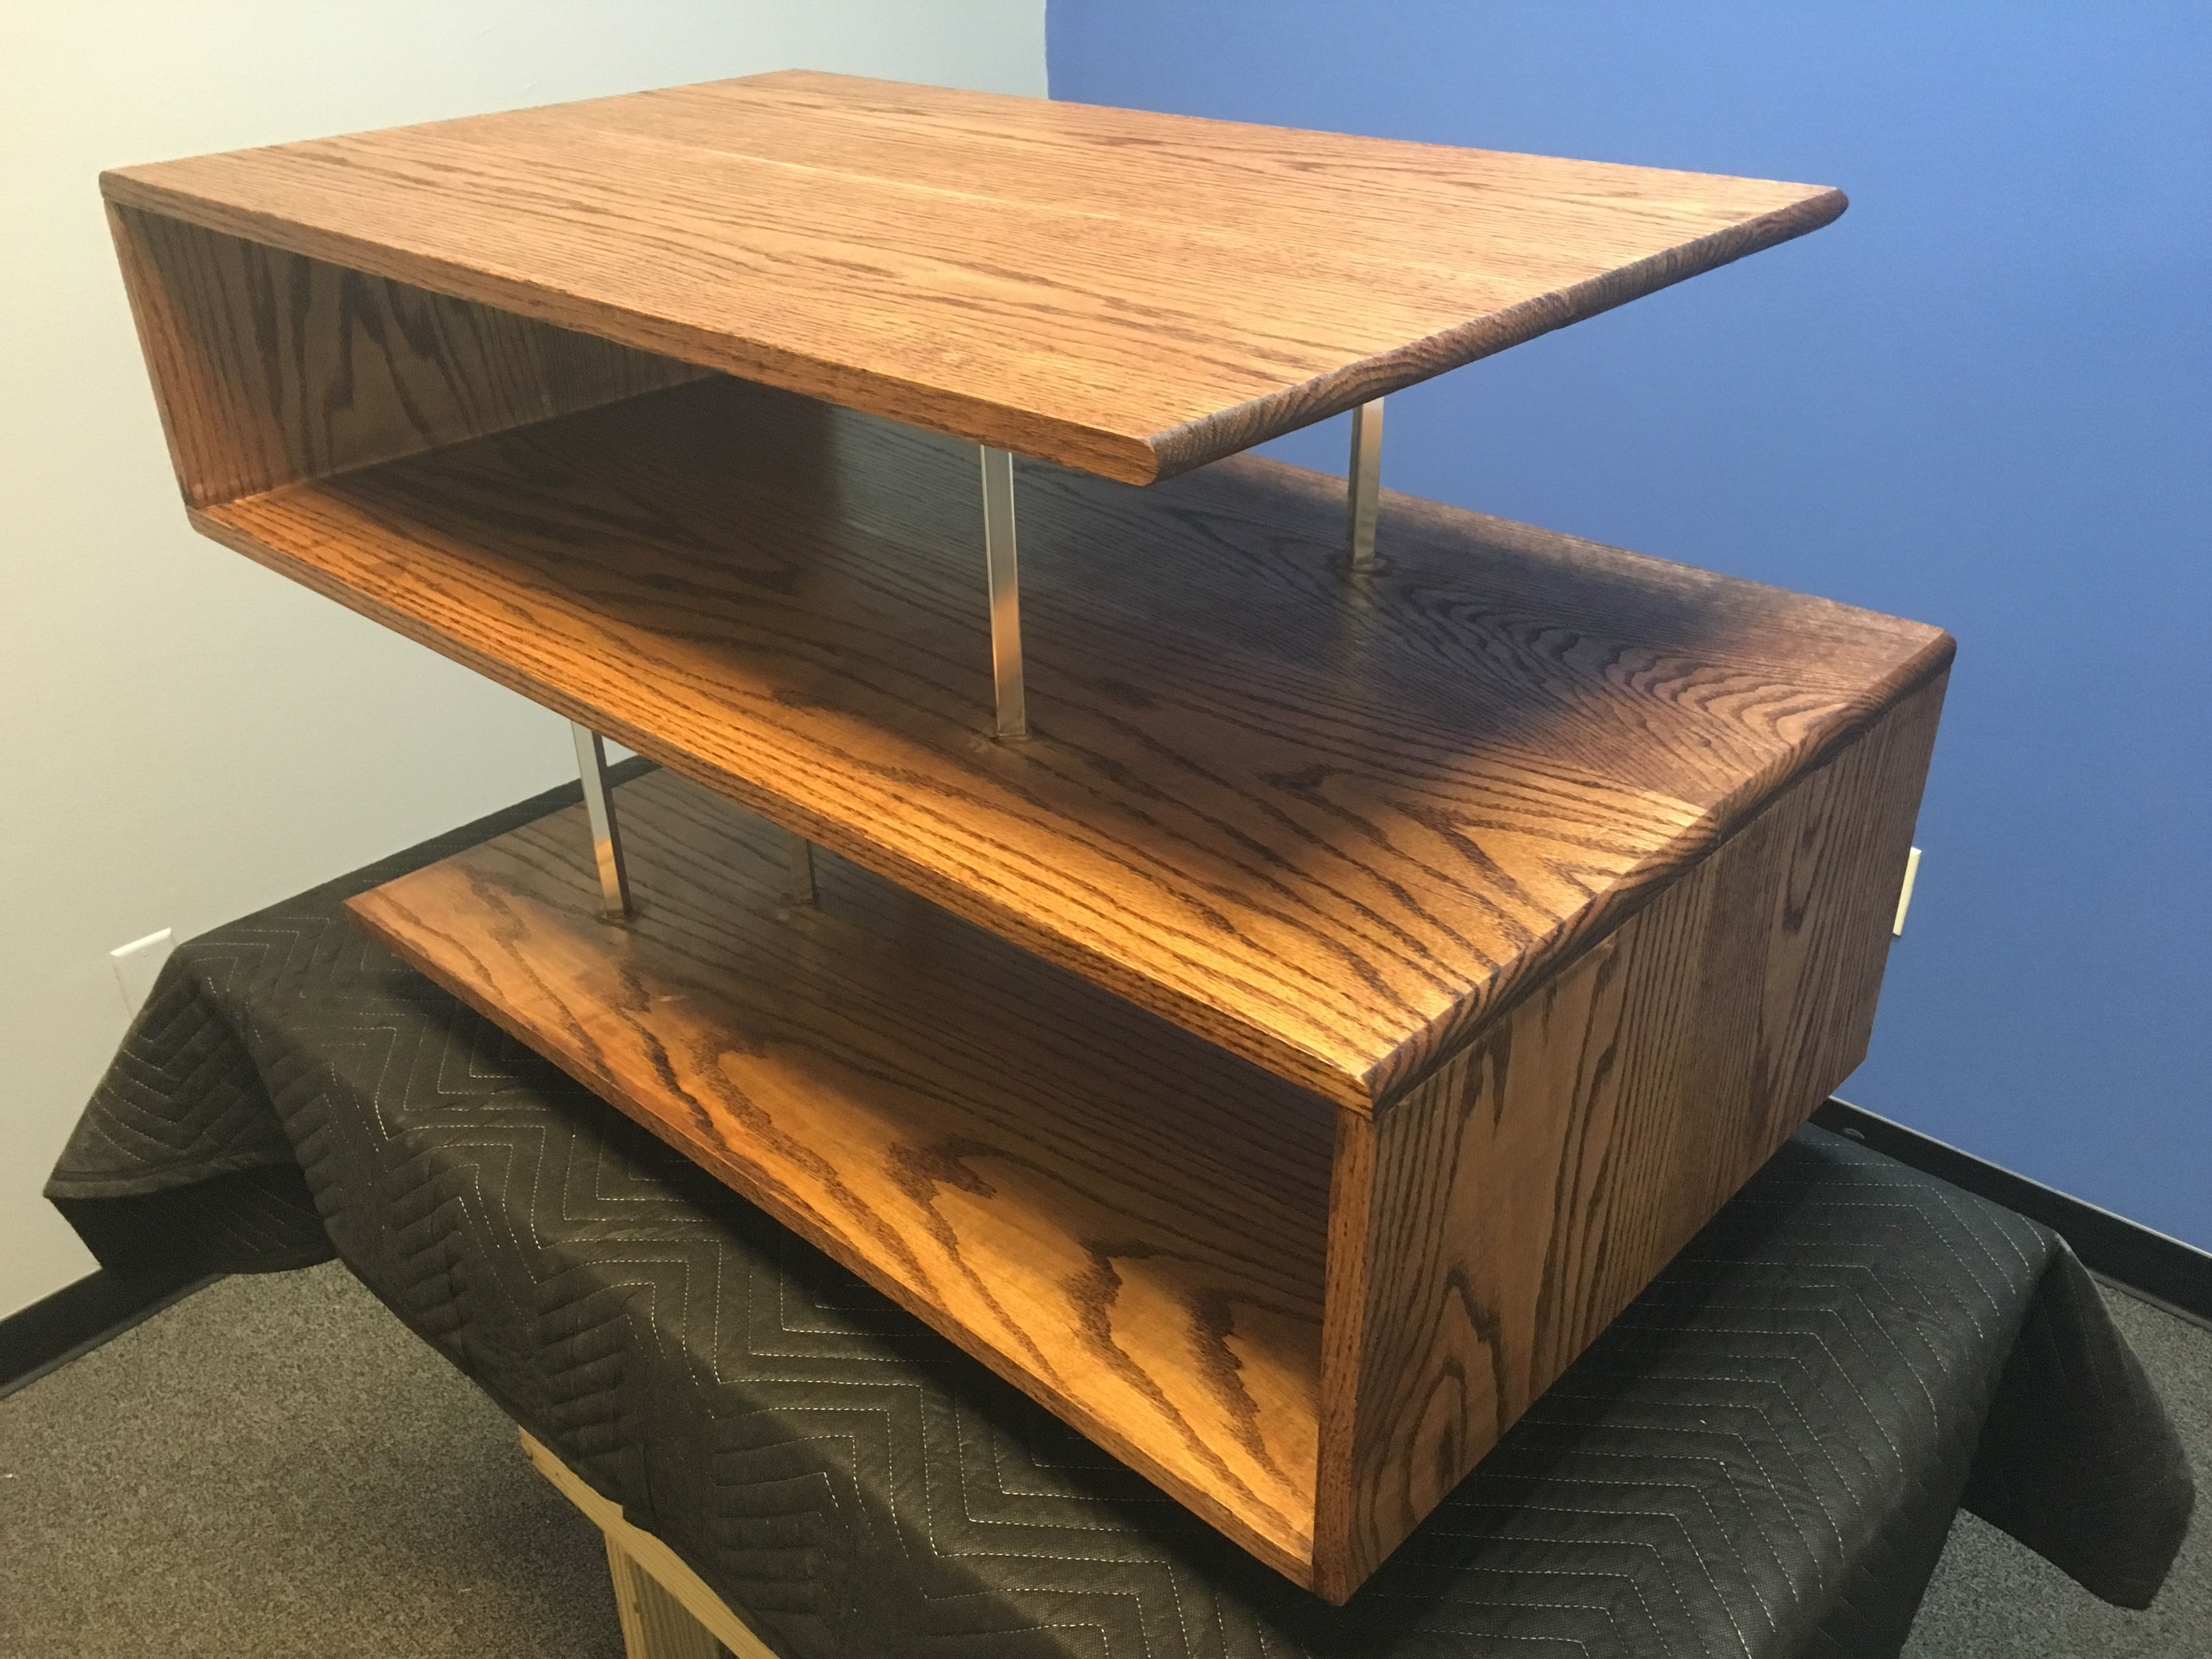 Pleasant Buy A Handmade Red Oak Coffee Table Made To Order From Machost Co Dining Chair Design Ideas Machostcouk